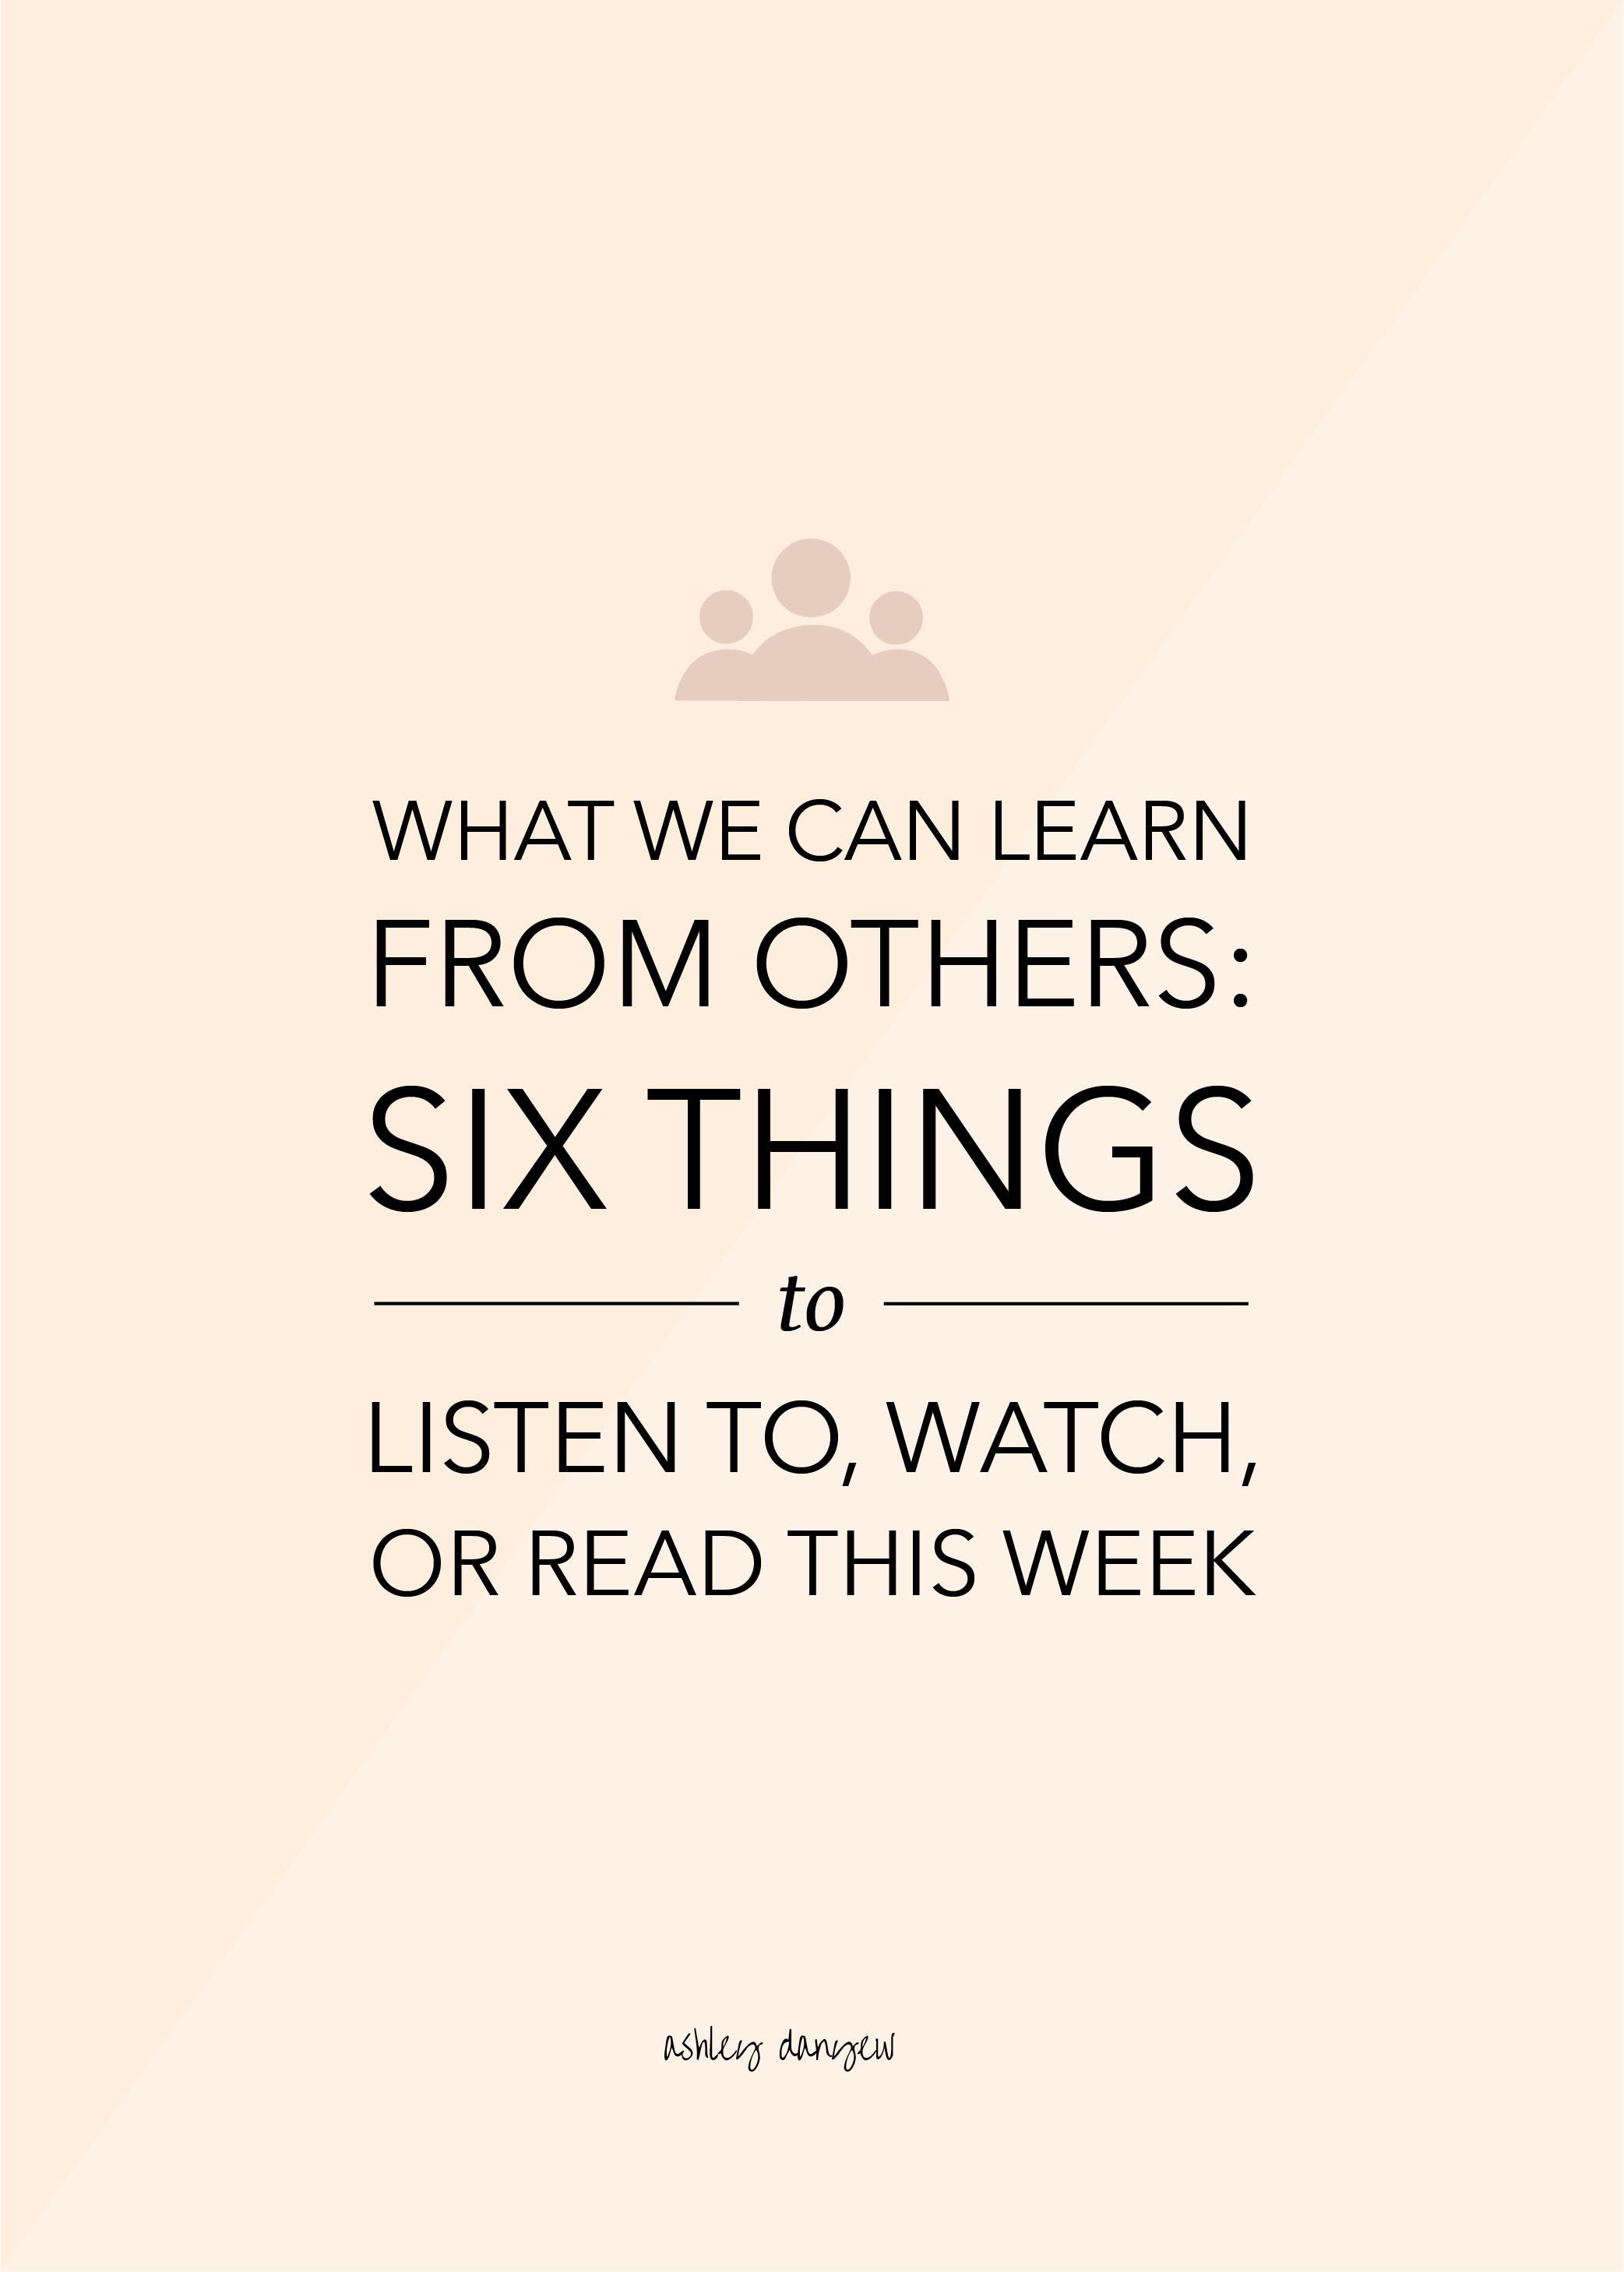 What We Can Learn From Others - Six Things to Listen to, Watch, or Read This Week.png